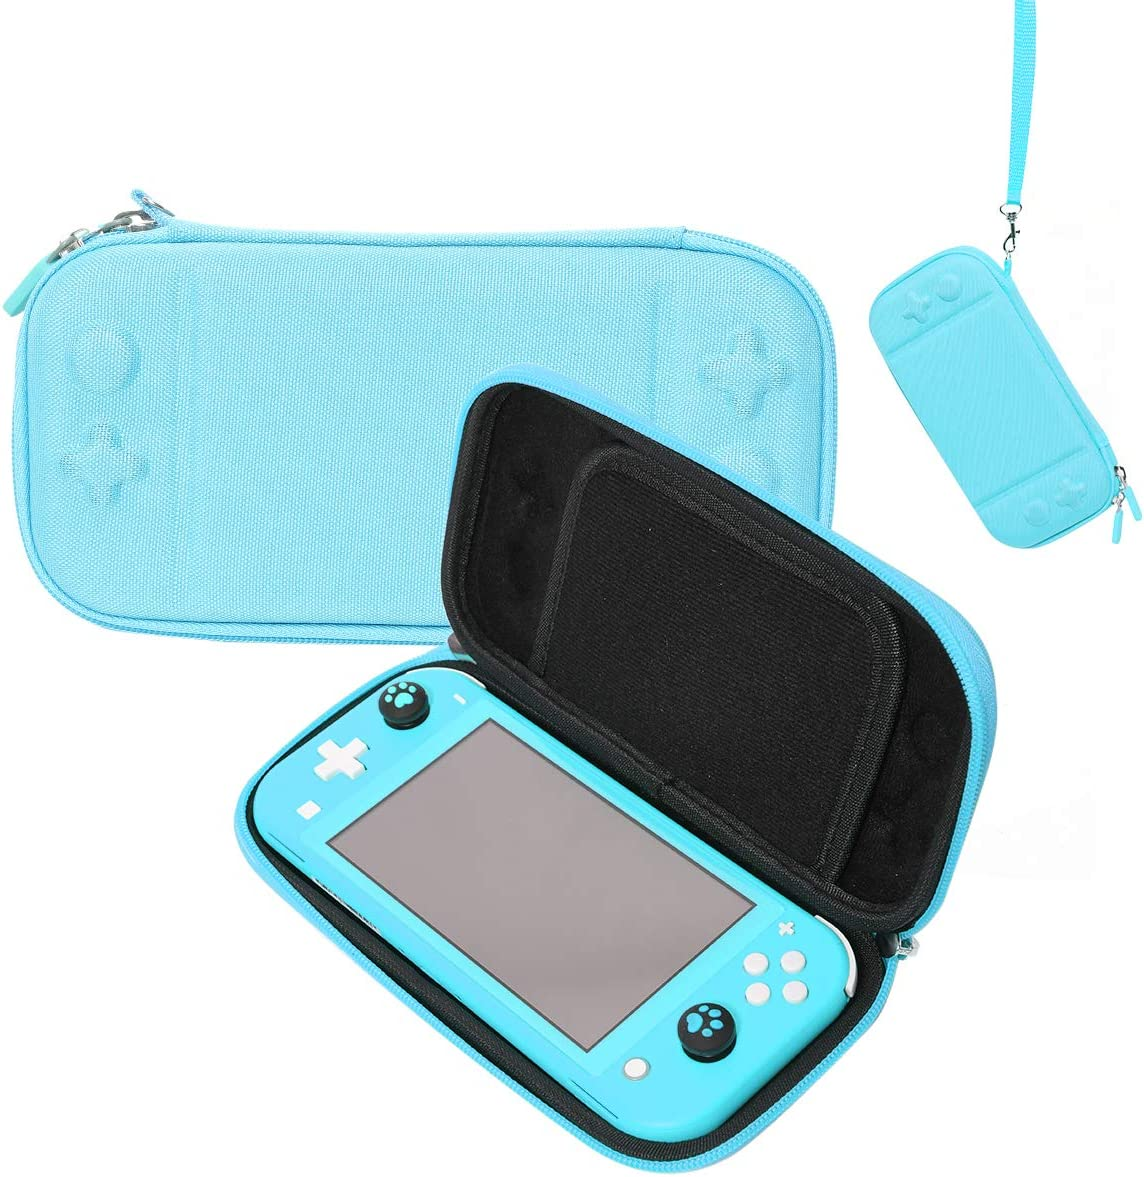 Carry Case for Nintendo Switch Lite, Protective Portable Carrying Cases Travel Storage Hard Shell with 8 Game Cartridges and Military Level Protection